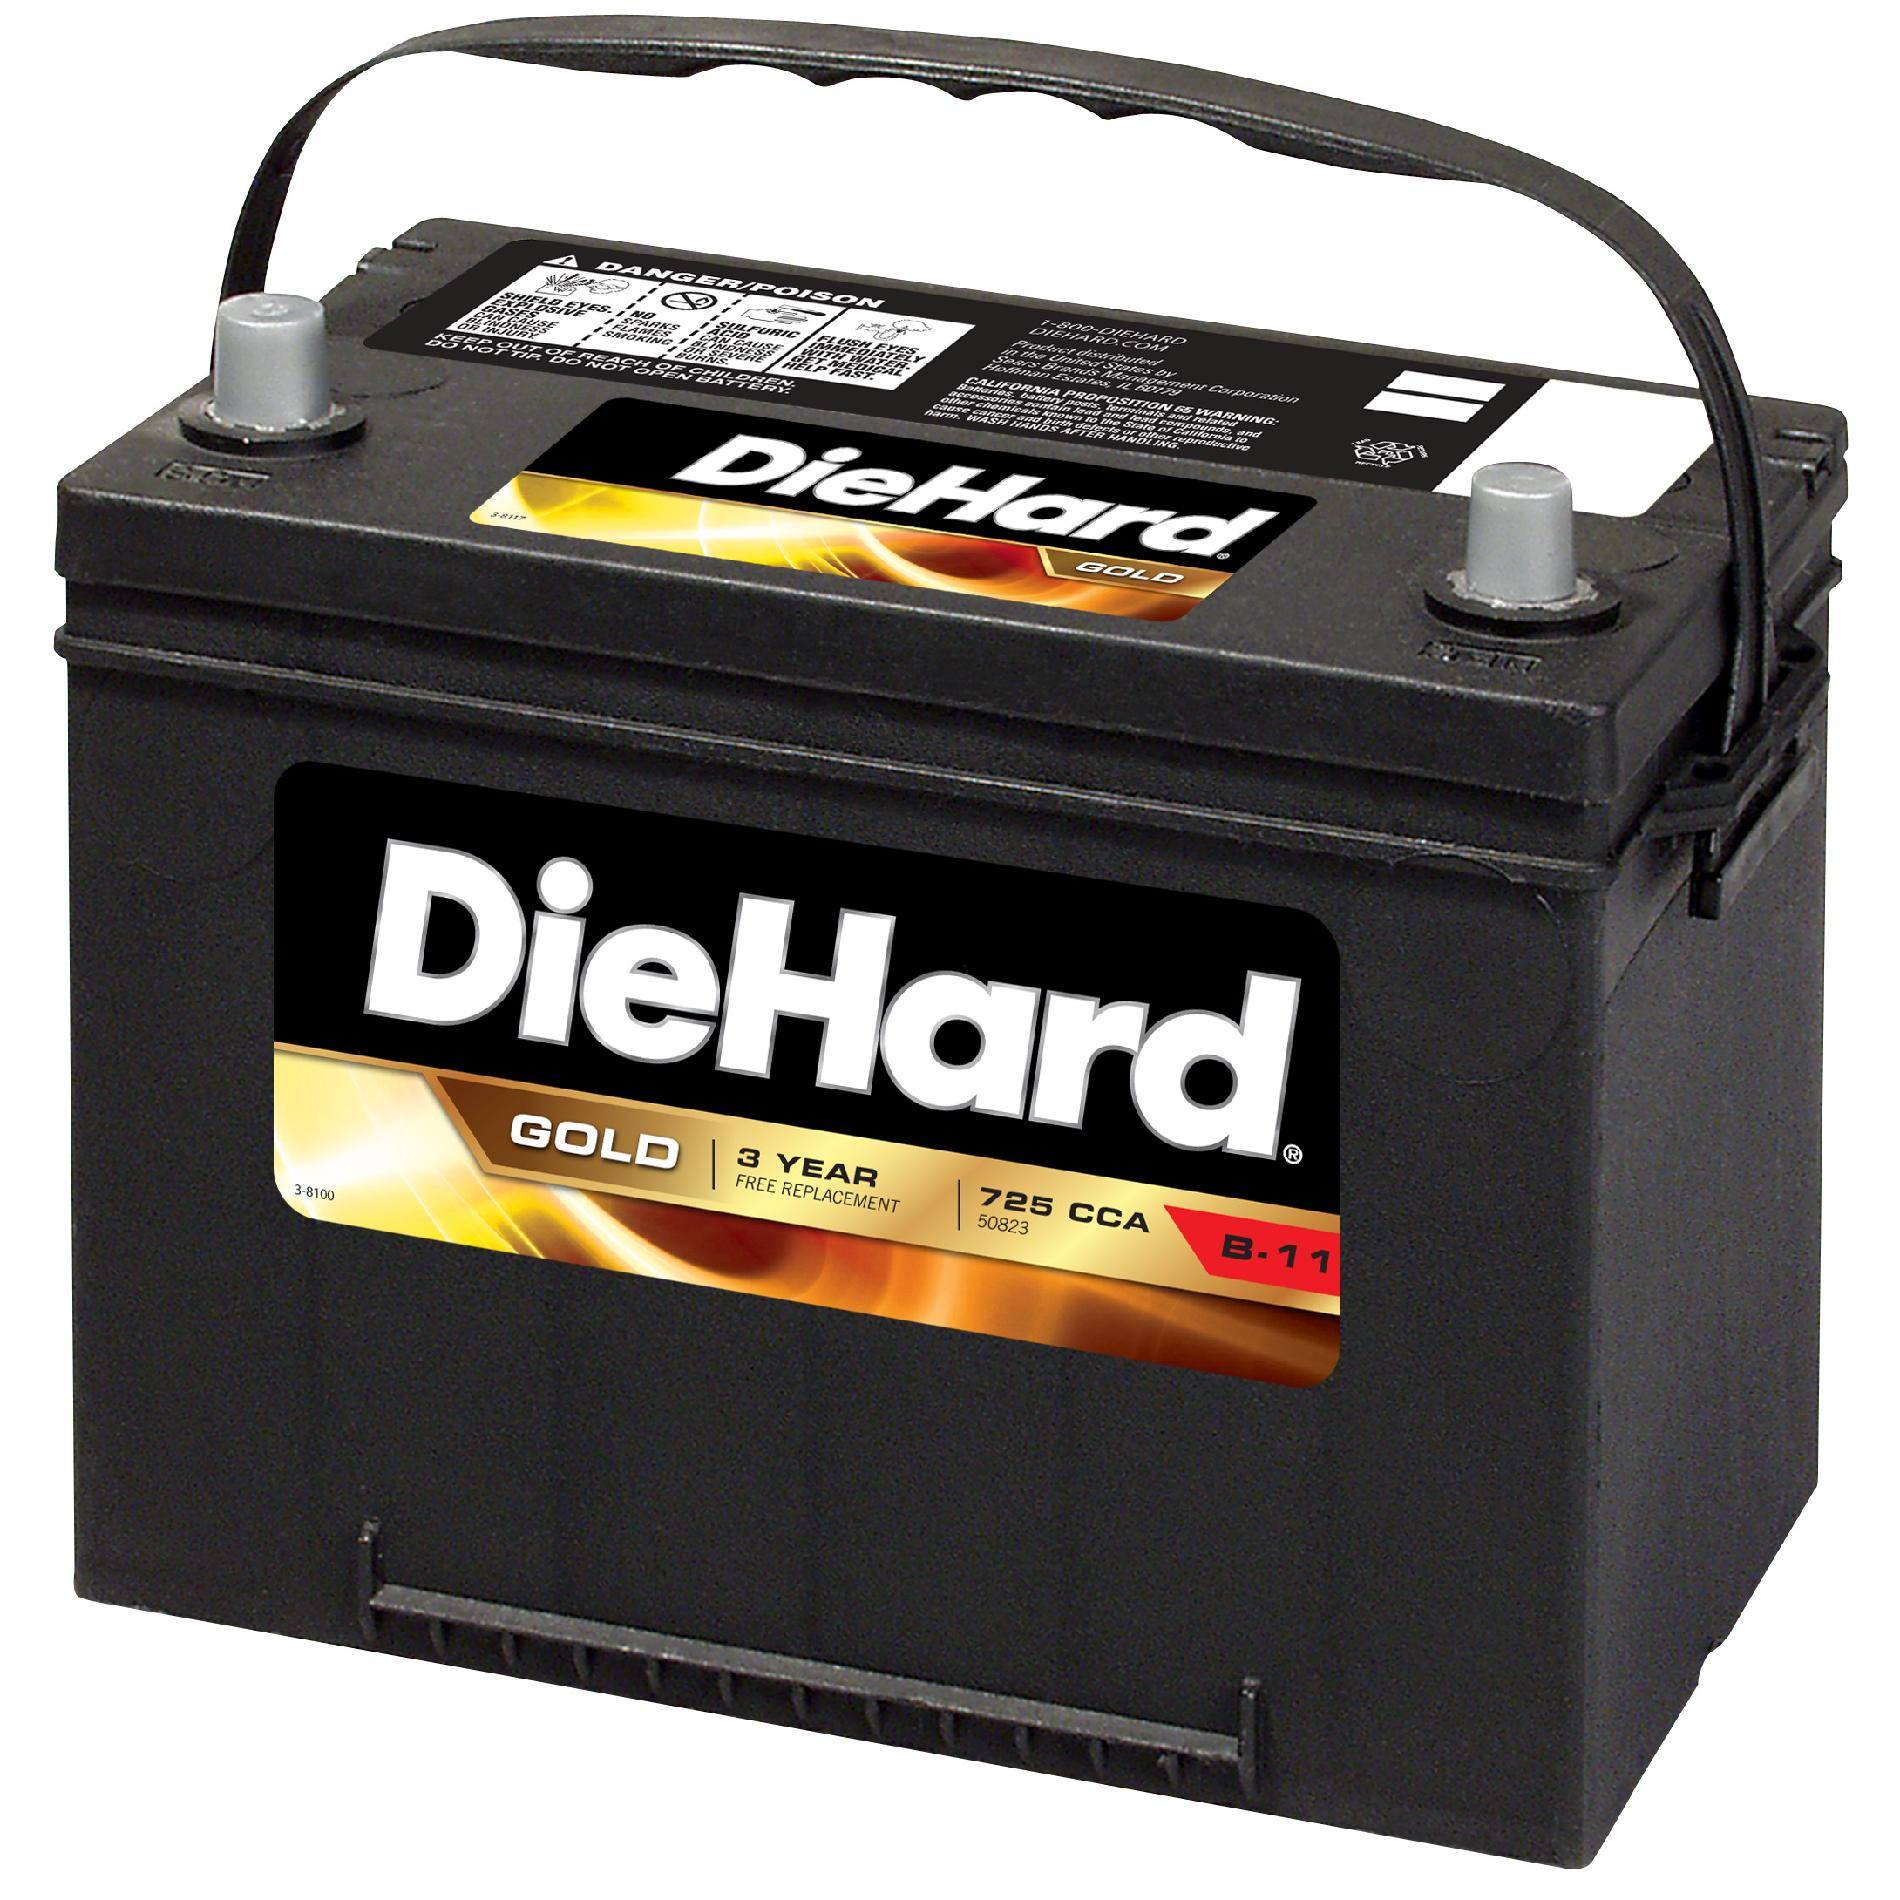 diehard gold automotive battery group size ep 24f price with exchange  [ 1900 x 1900 Pixel ]